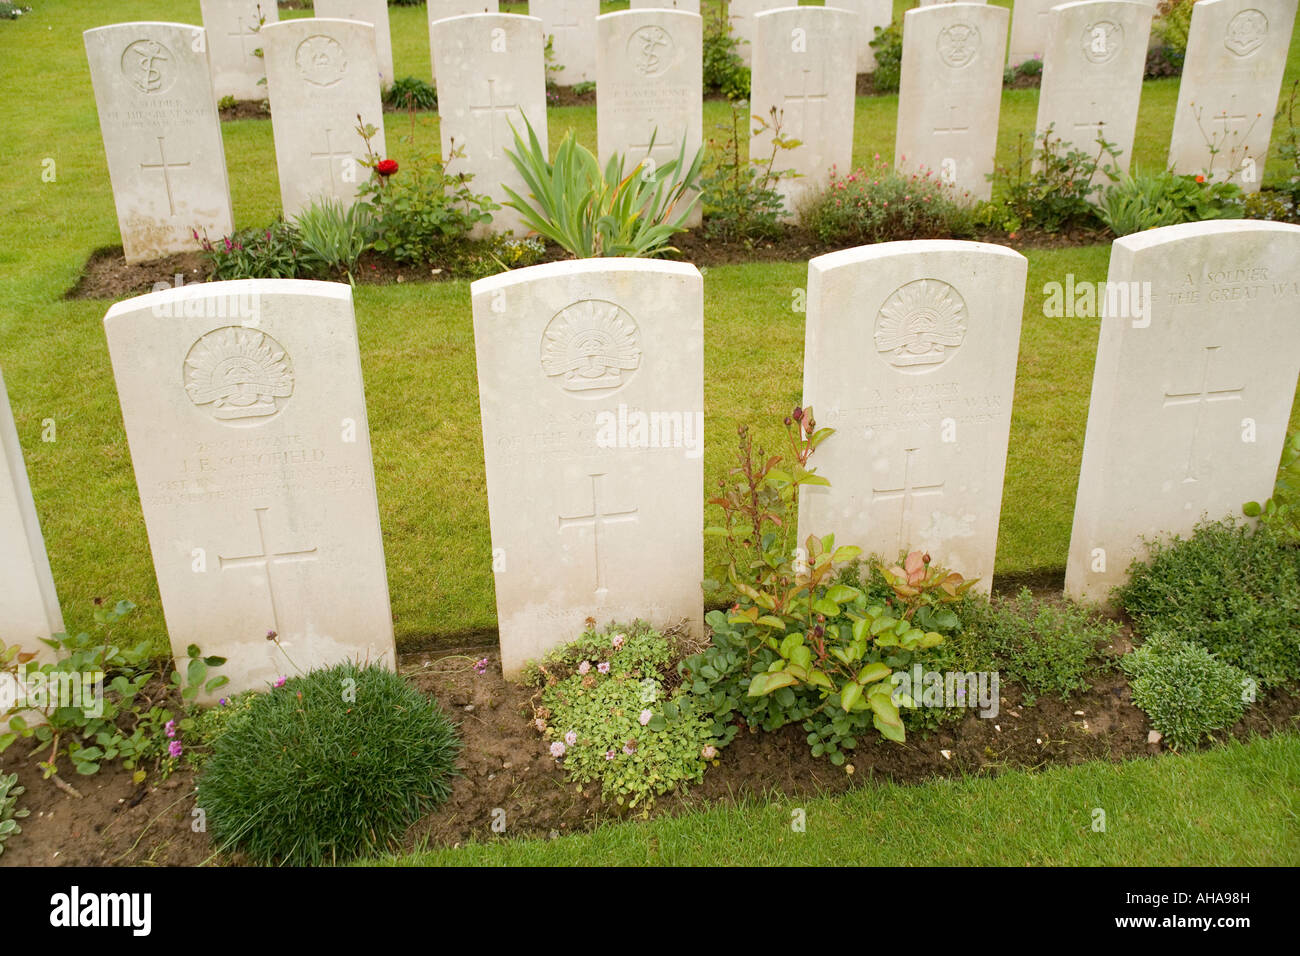 Serre 1 Meter Serre Road Number 1 Commonwealth War Graves Commission British